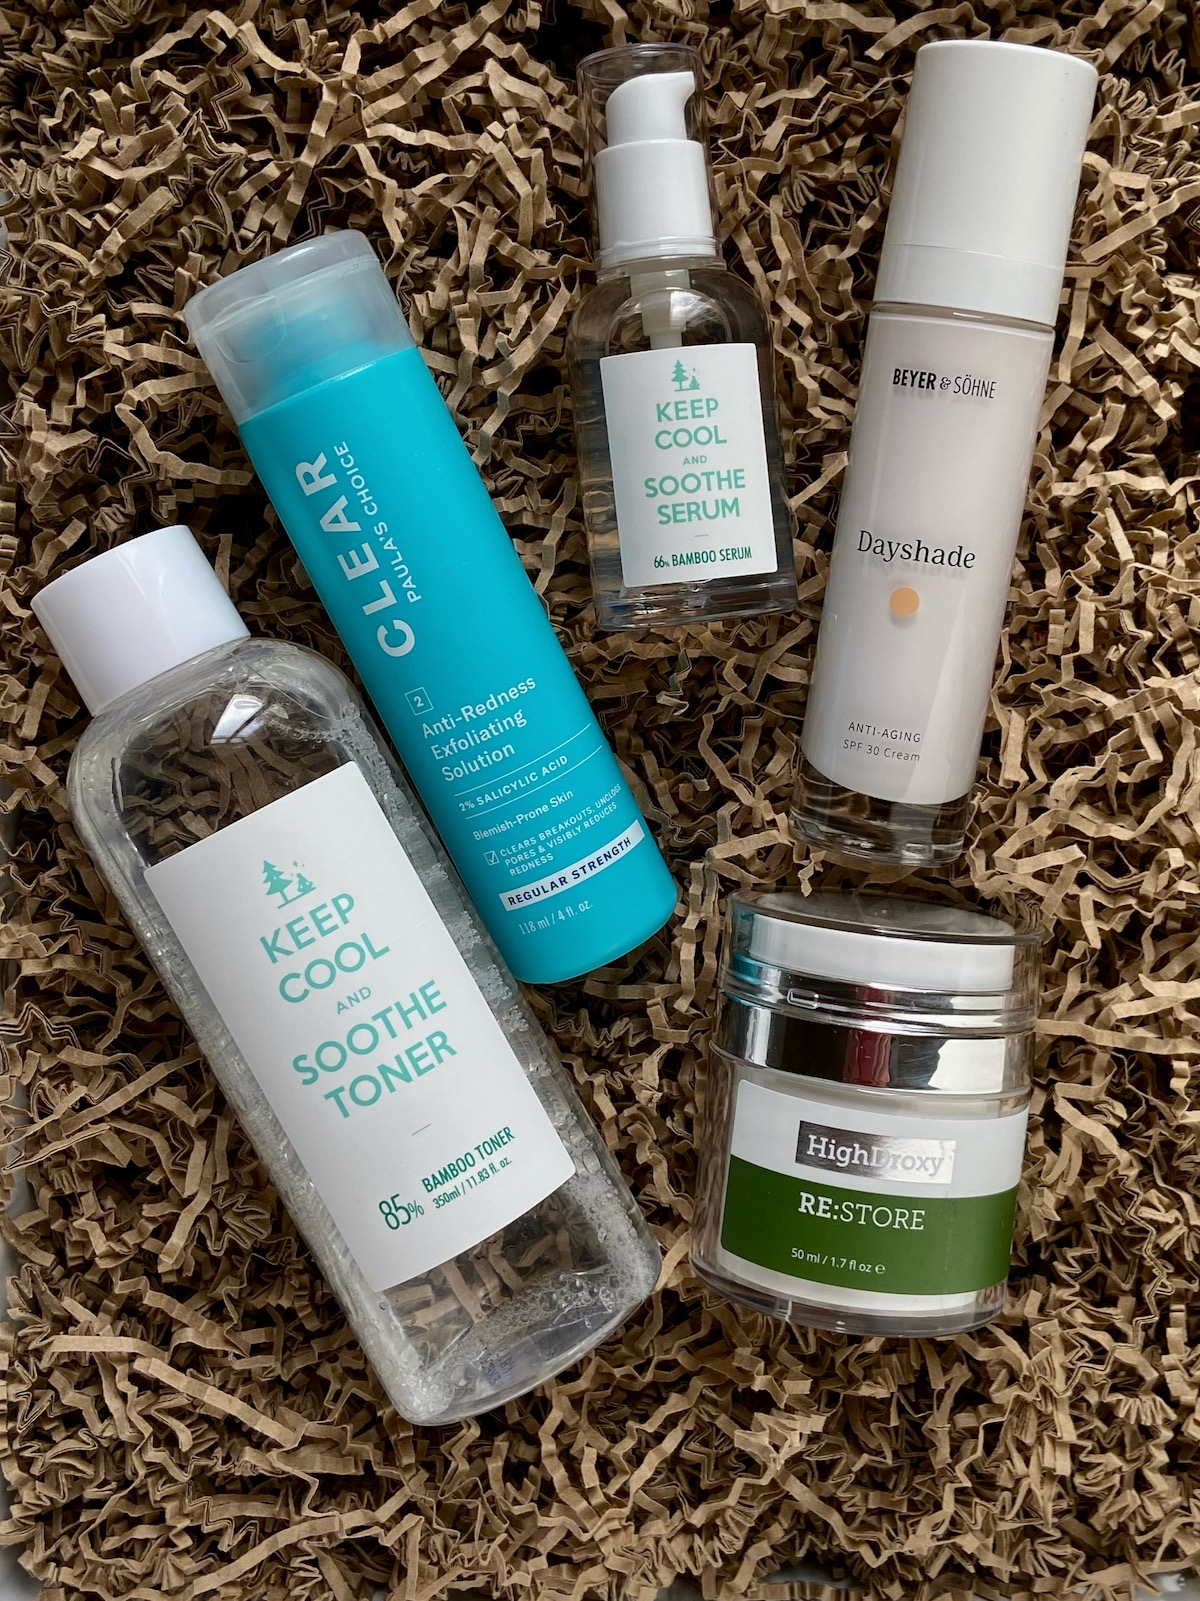 Winterpflege Gesicht Keep Cool Soothe Toner Paula's Choice Clear 2% BHA Regular Strength Keep Cool Soothe serum Beyer & Söhne Dayshade HighDroxy RESTORE Hautpflege